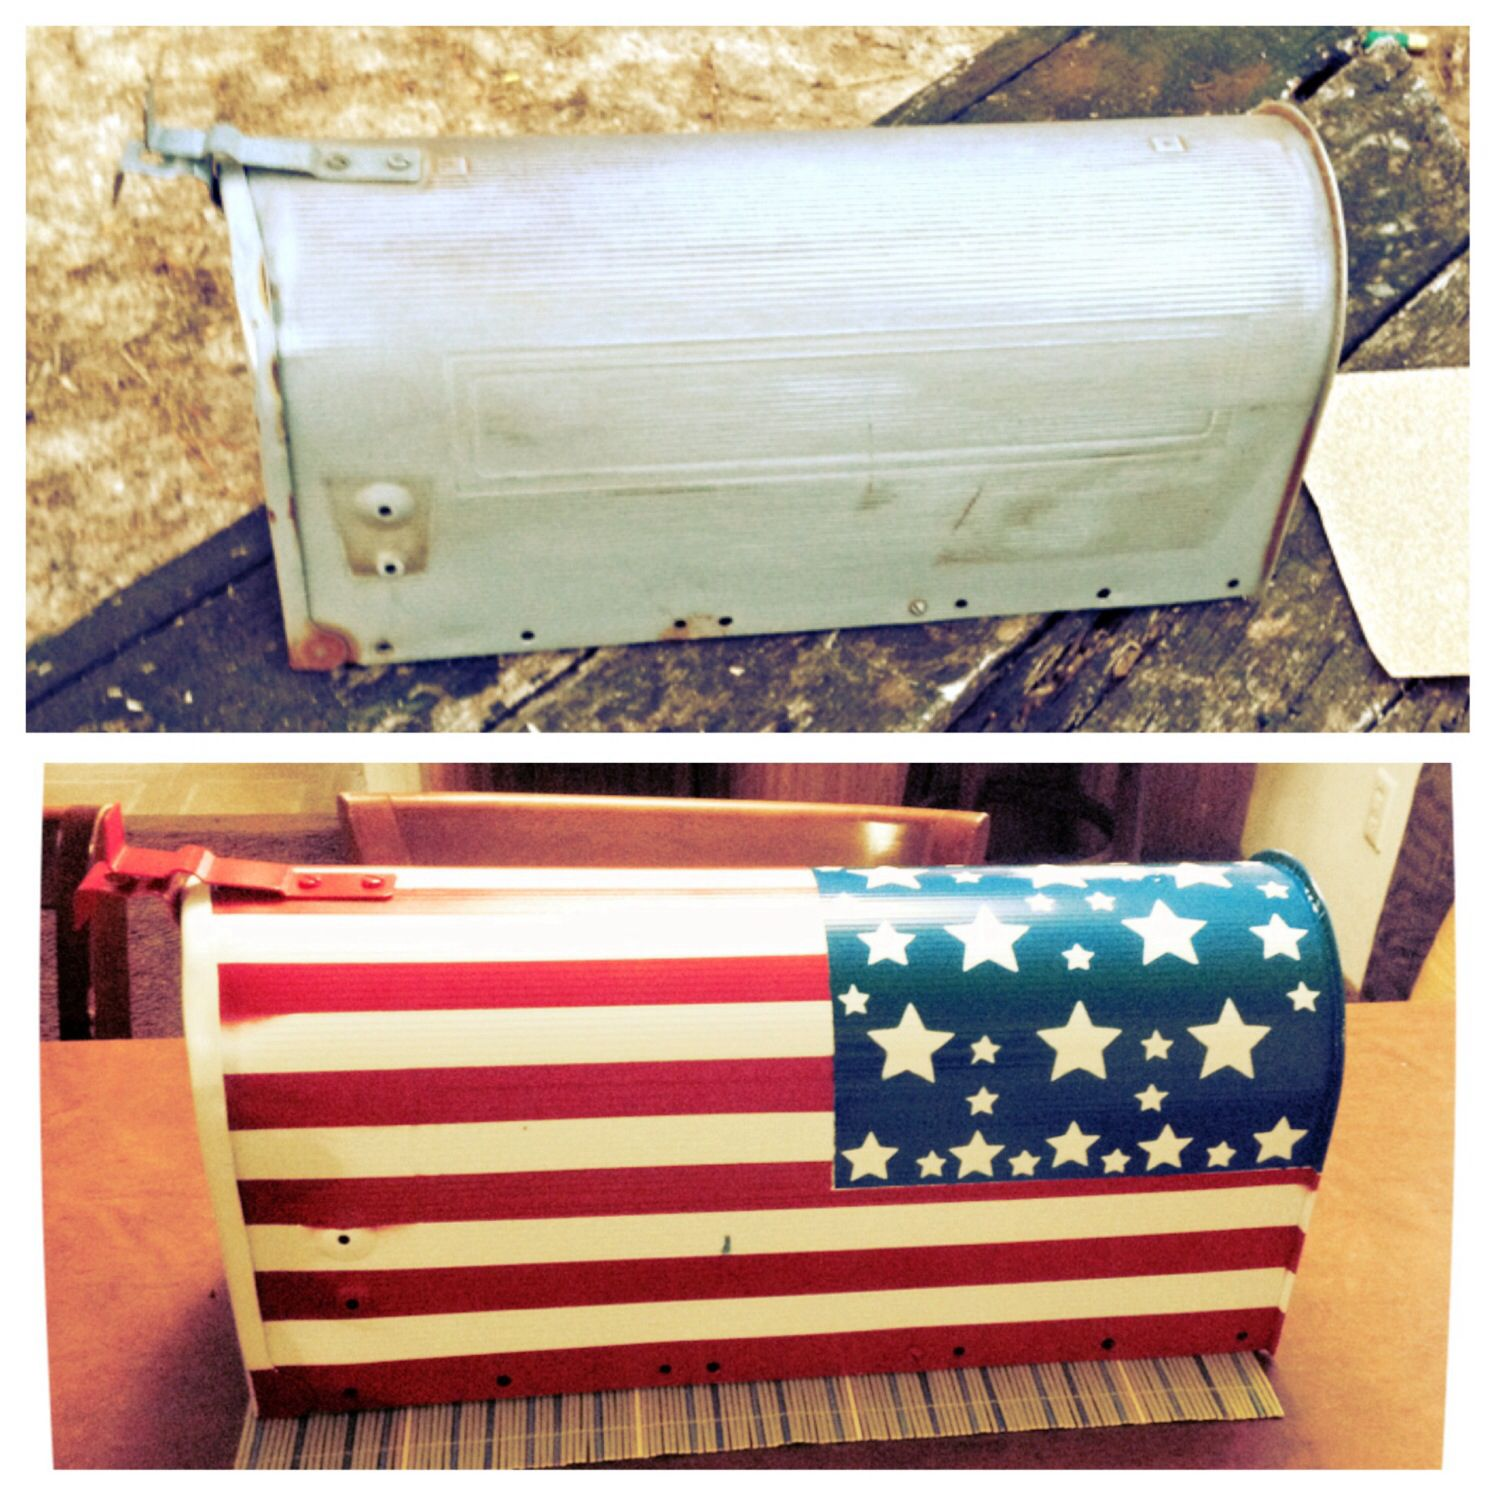 American Flag Mailbox, Hand Painted. DIY Project